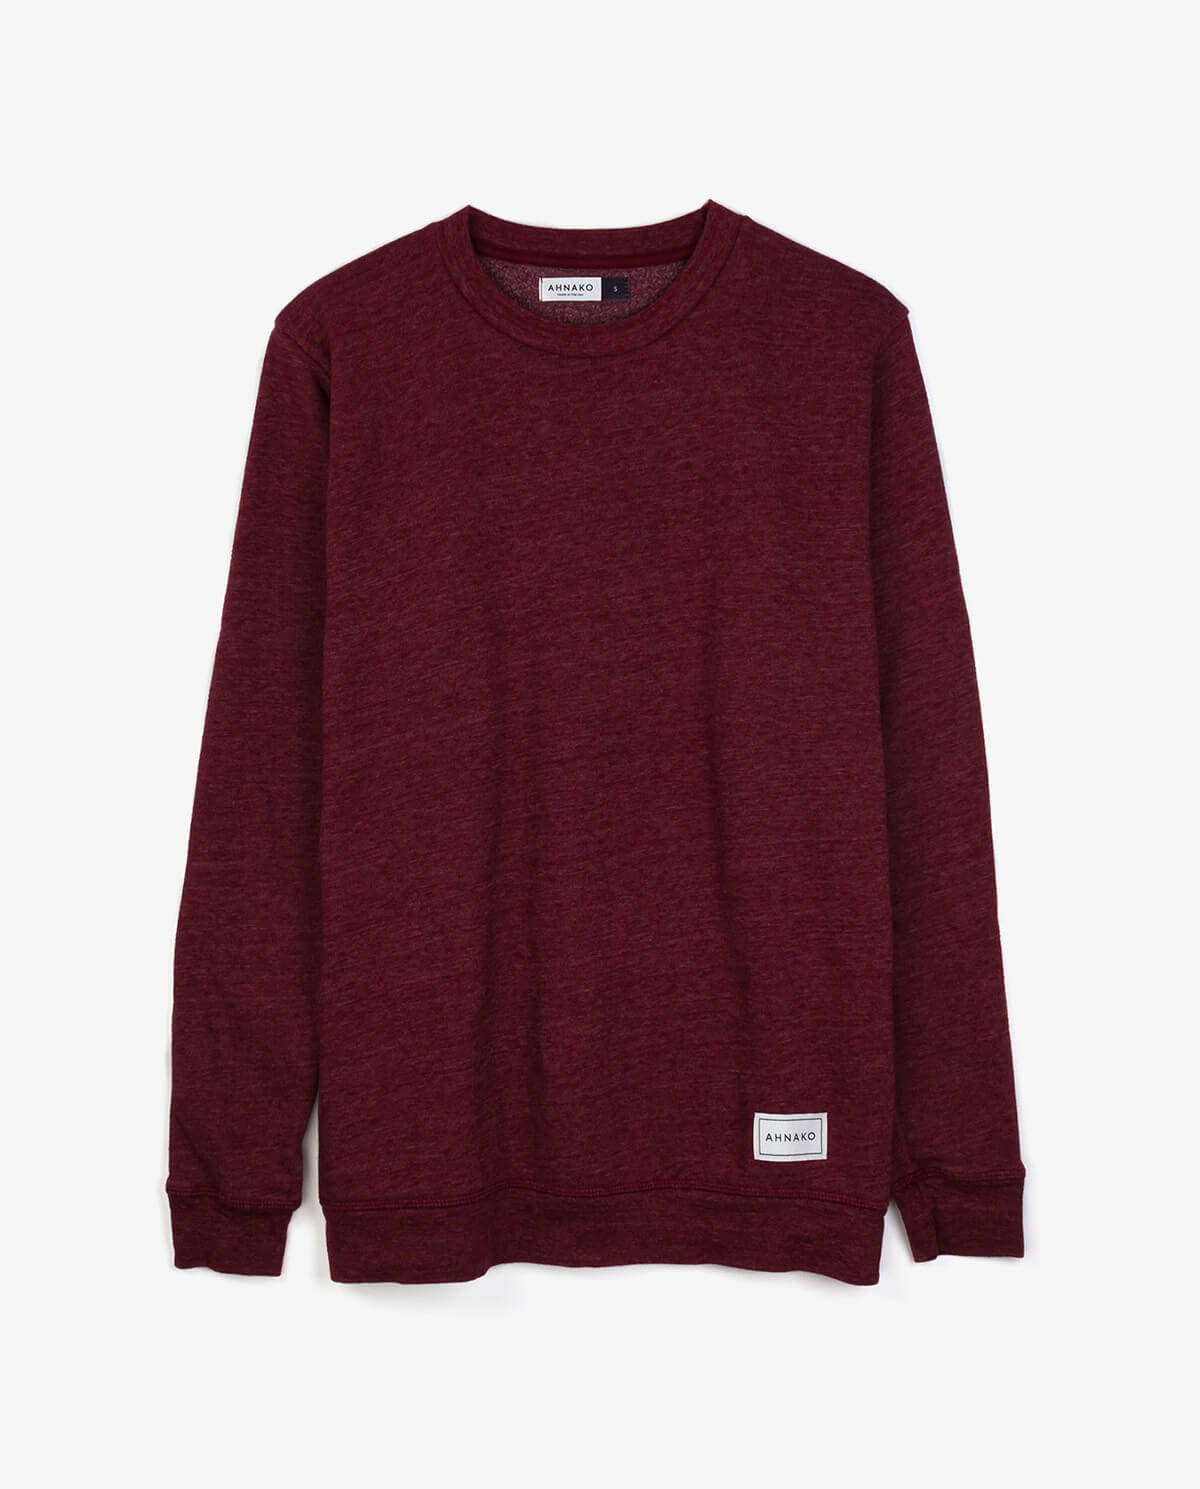 Ahnako Burgunday Sweater with Logo Patch